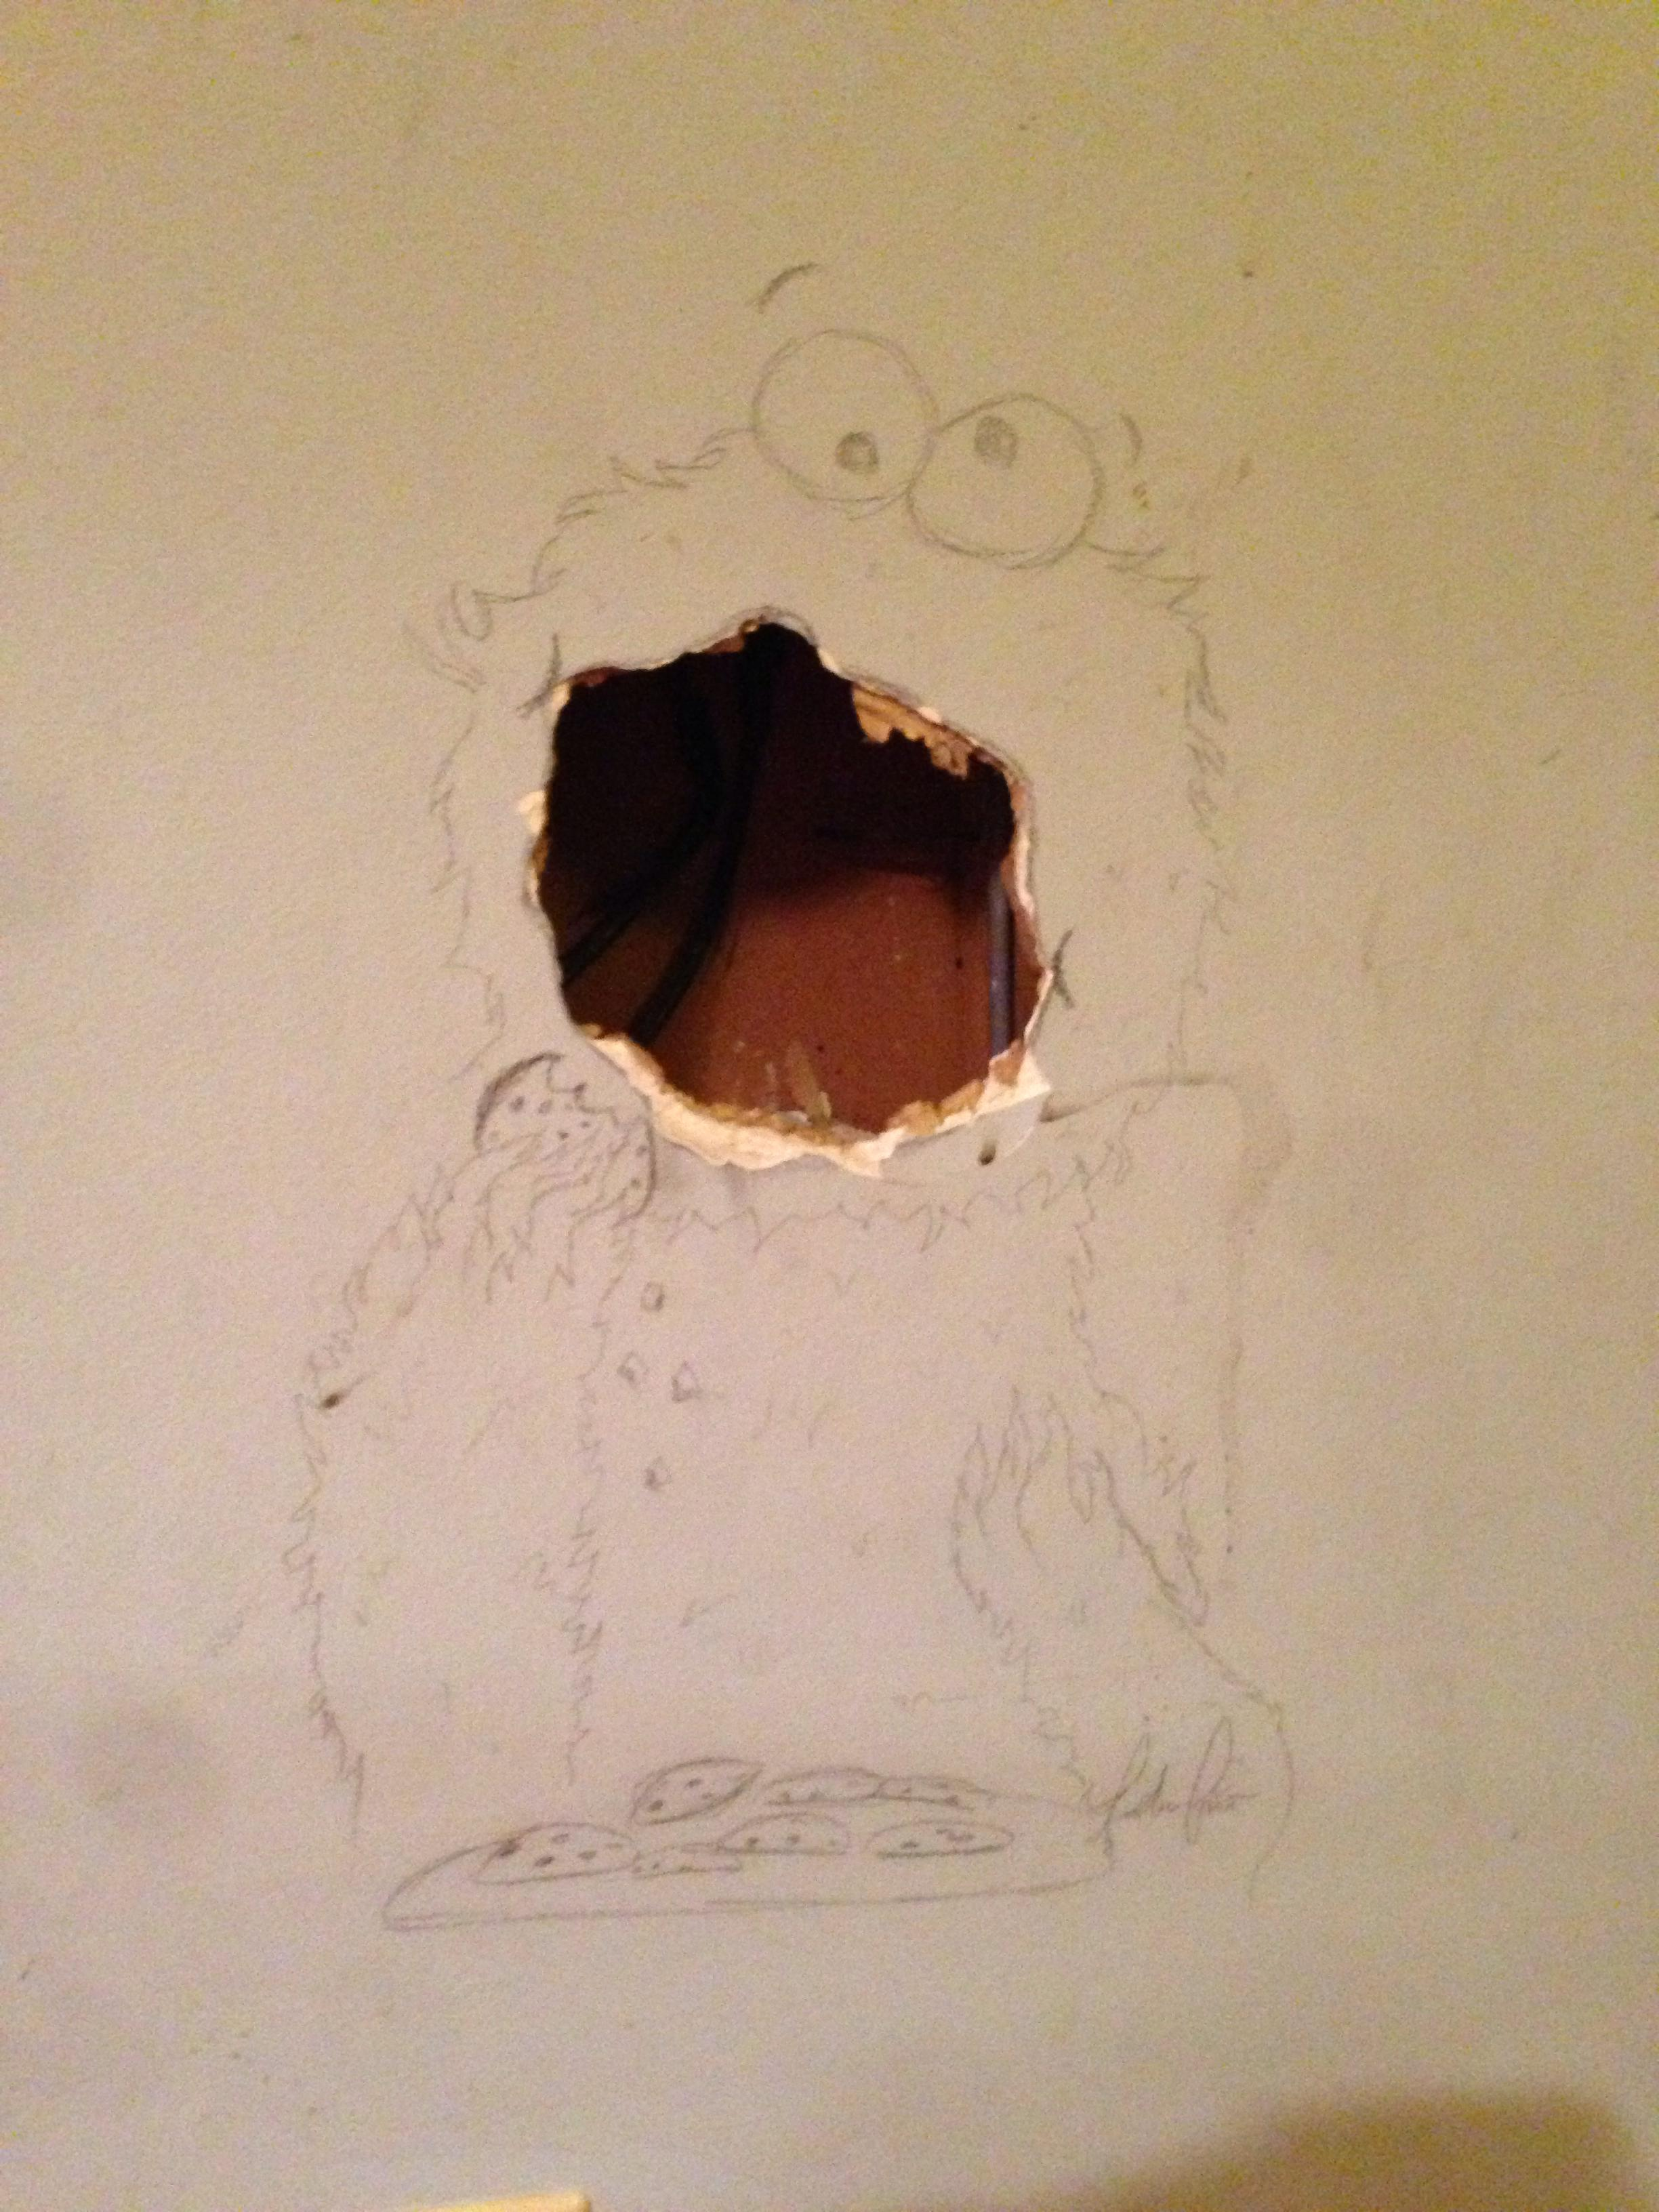 Now This How To Disguise A Hole In The Wall The Poke